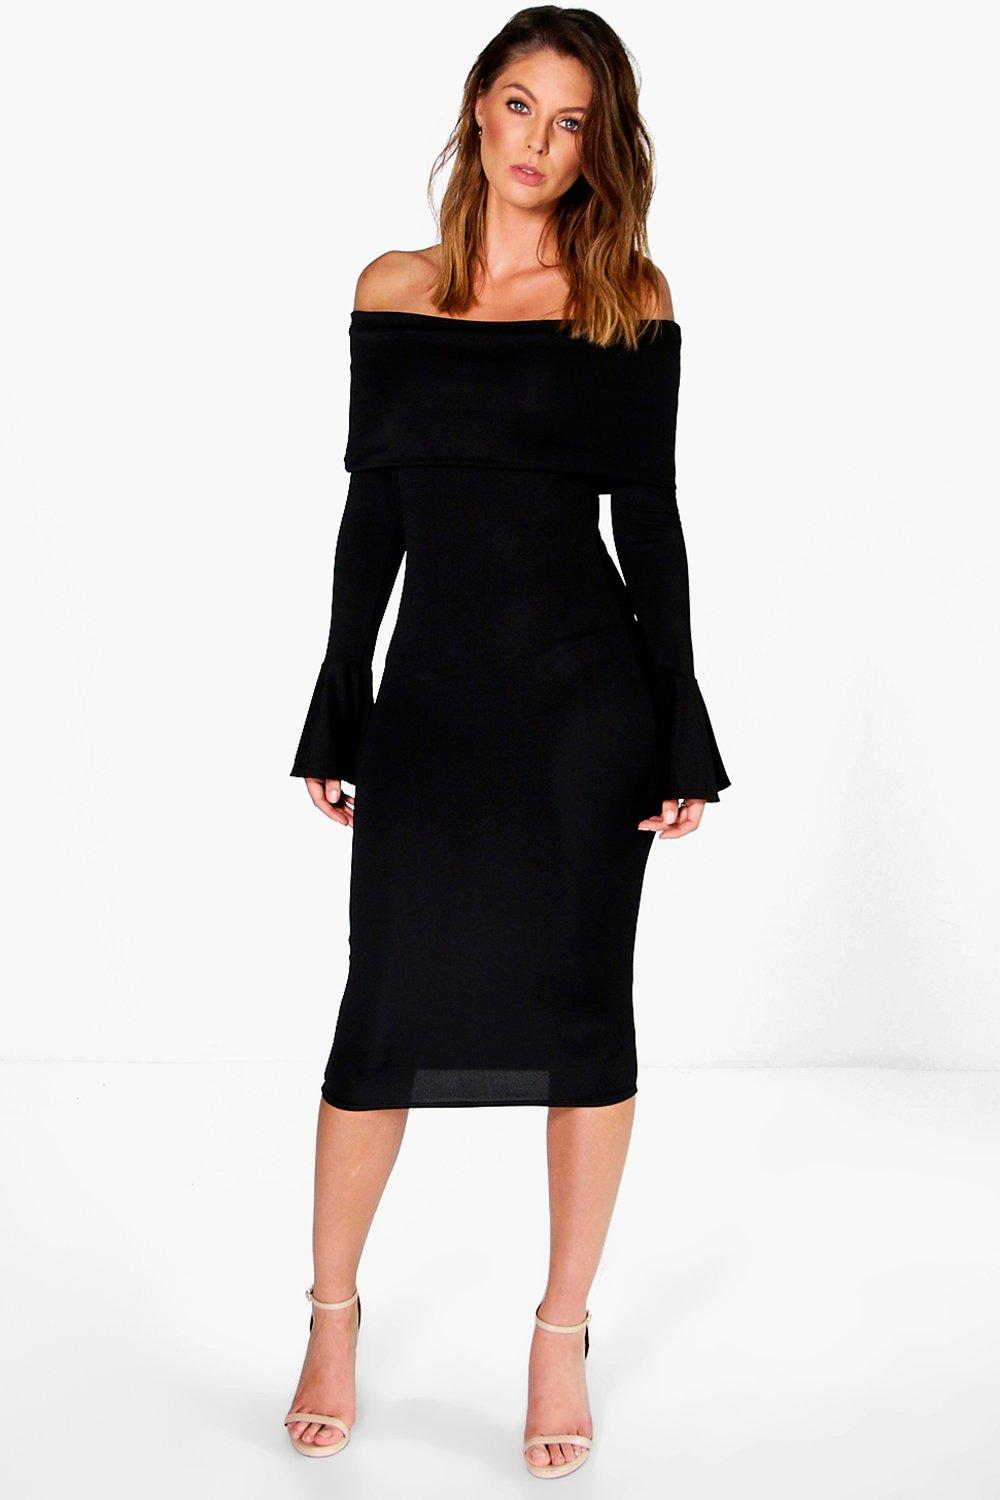 Annora Oversized Bardot Midi Dress £20 Click to visit Boohoo